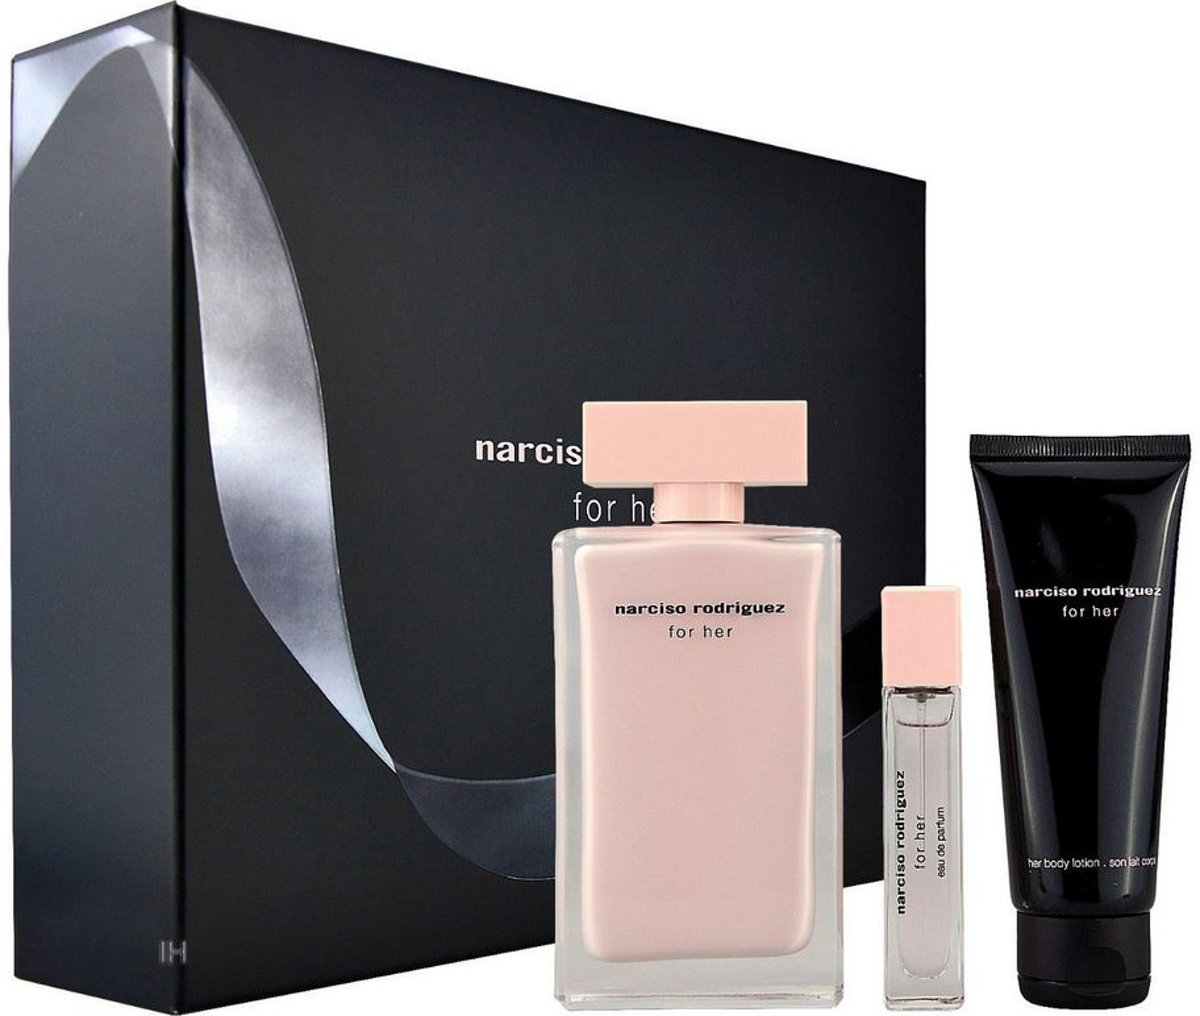 Narciso Rodriguez - Eau de parfum - For her 100ml eau de parfum + 75ml bodylotion + 10ml eau de parfum - Gifts ml